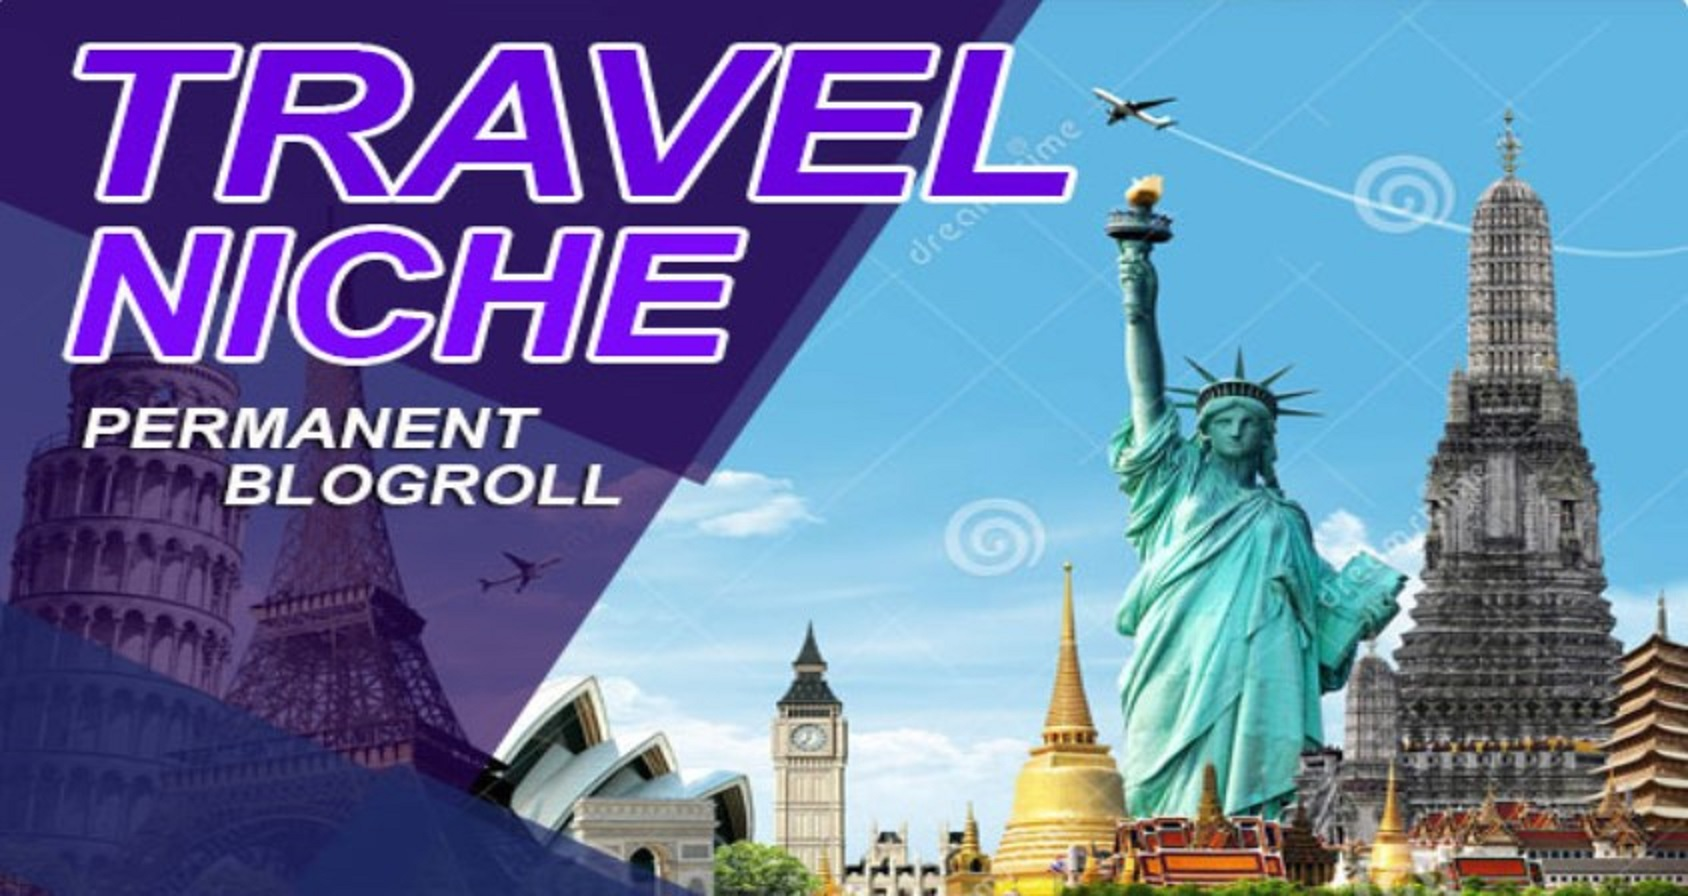 60 travel niche related high DA SEO backlinks